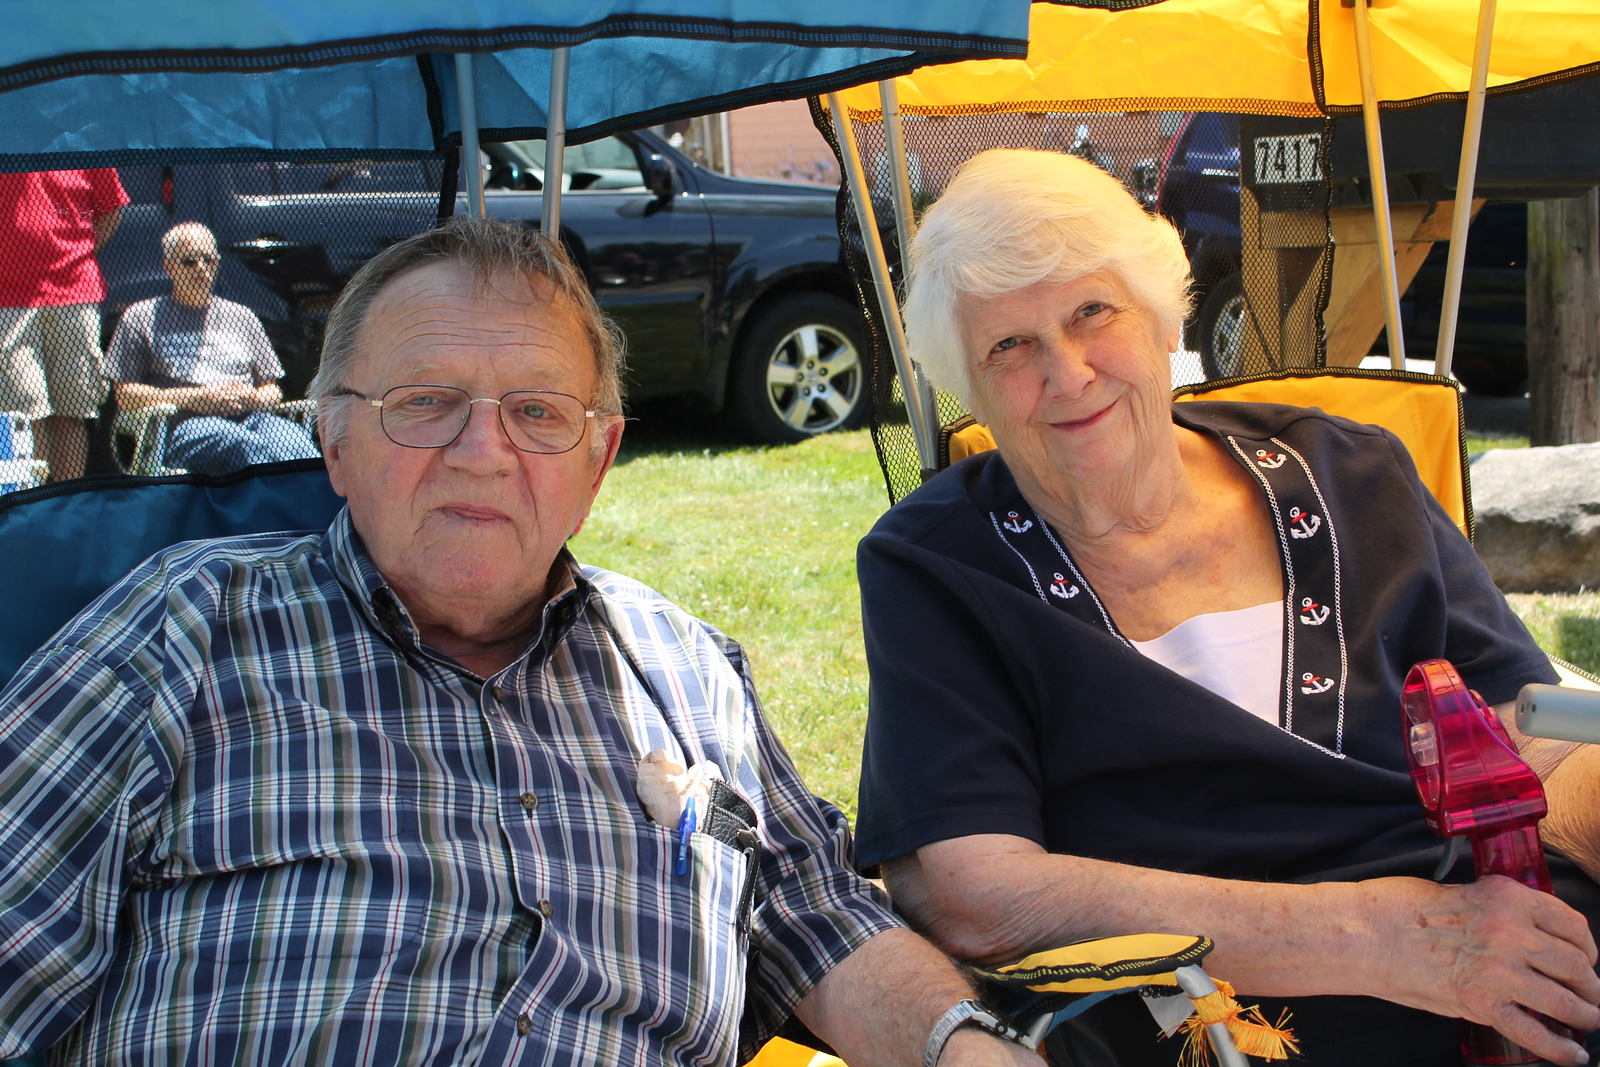 LAWRENCE PANTAGES / GAZETTE Arnold and Shirley Sikula watch Tuesday's July 4 parade in Chippewa Lake. The couple has lived in the village since 1948.